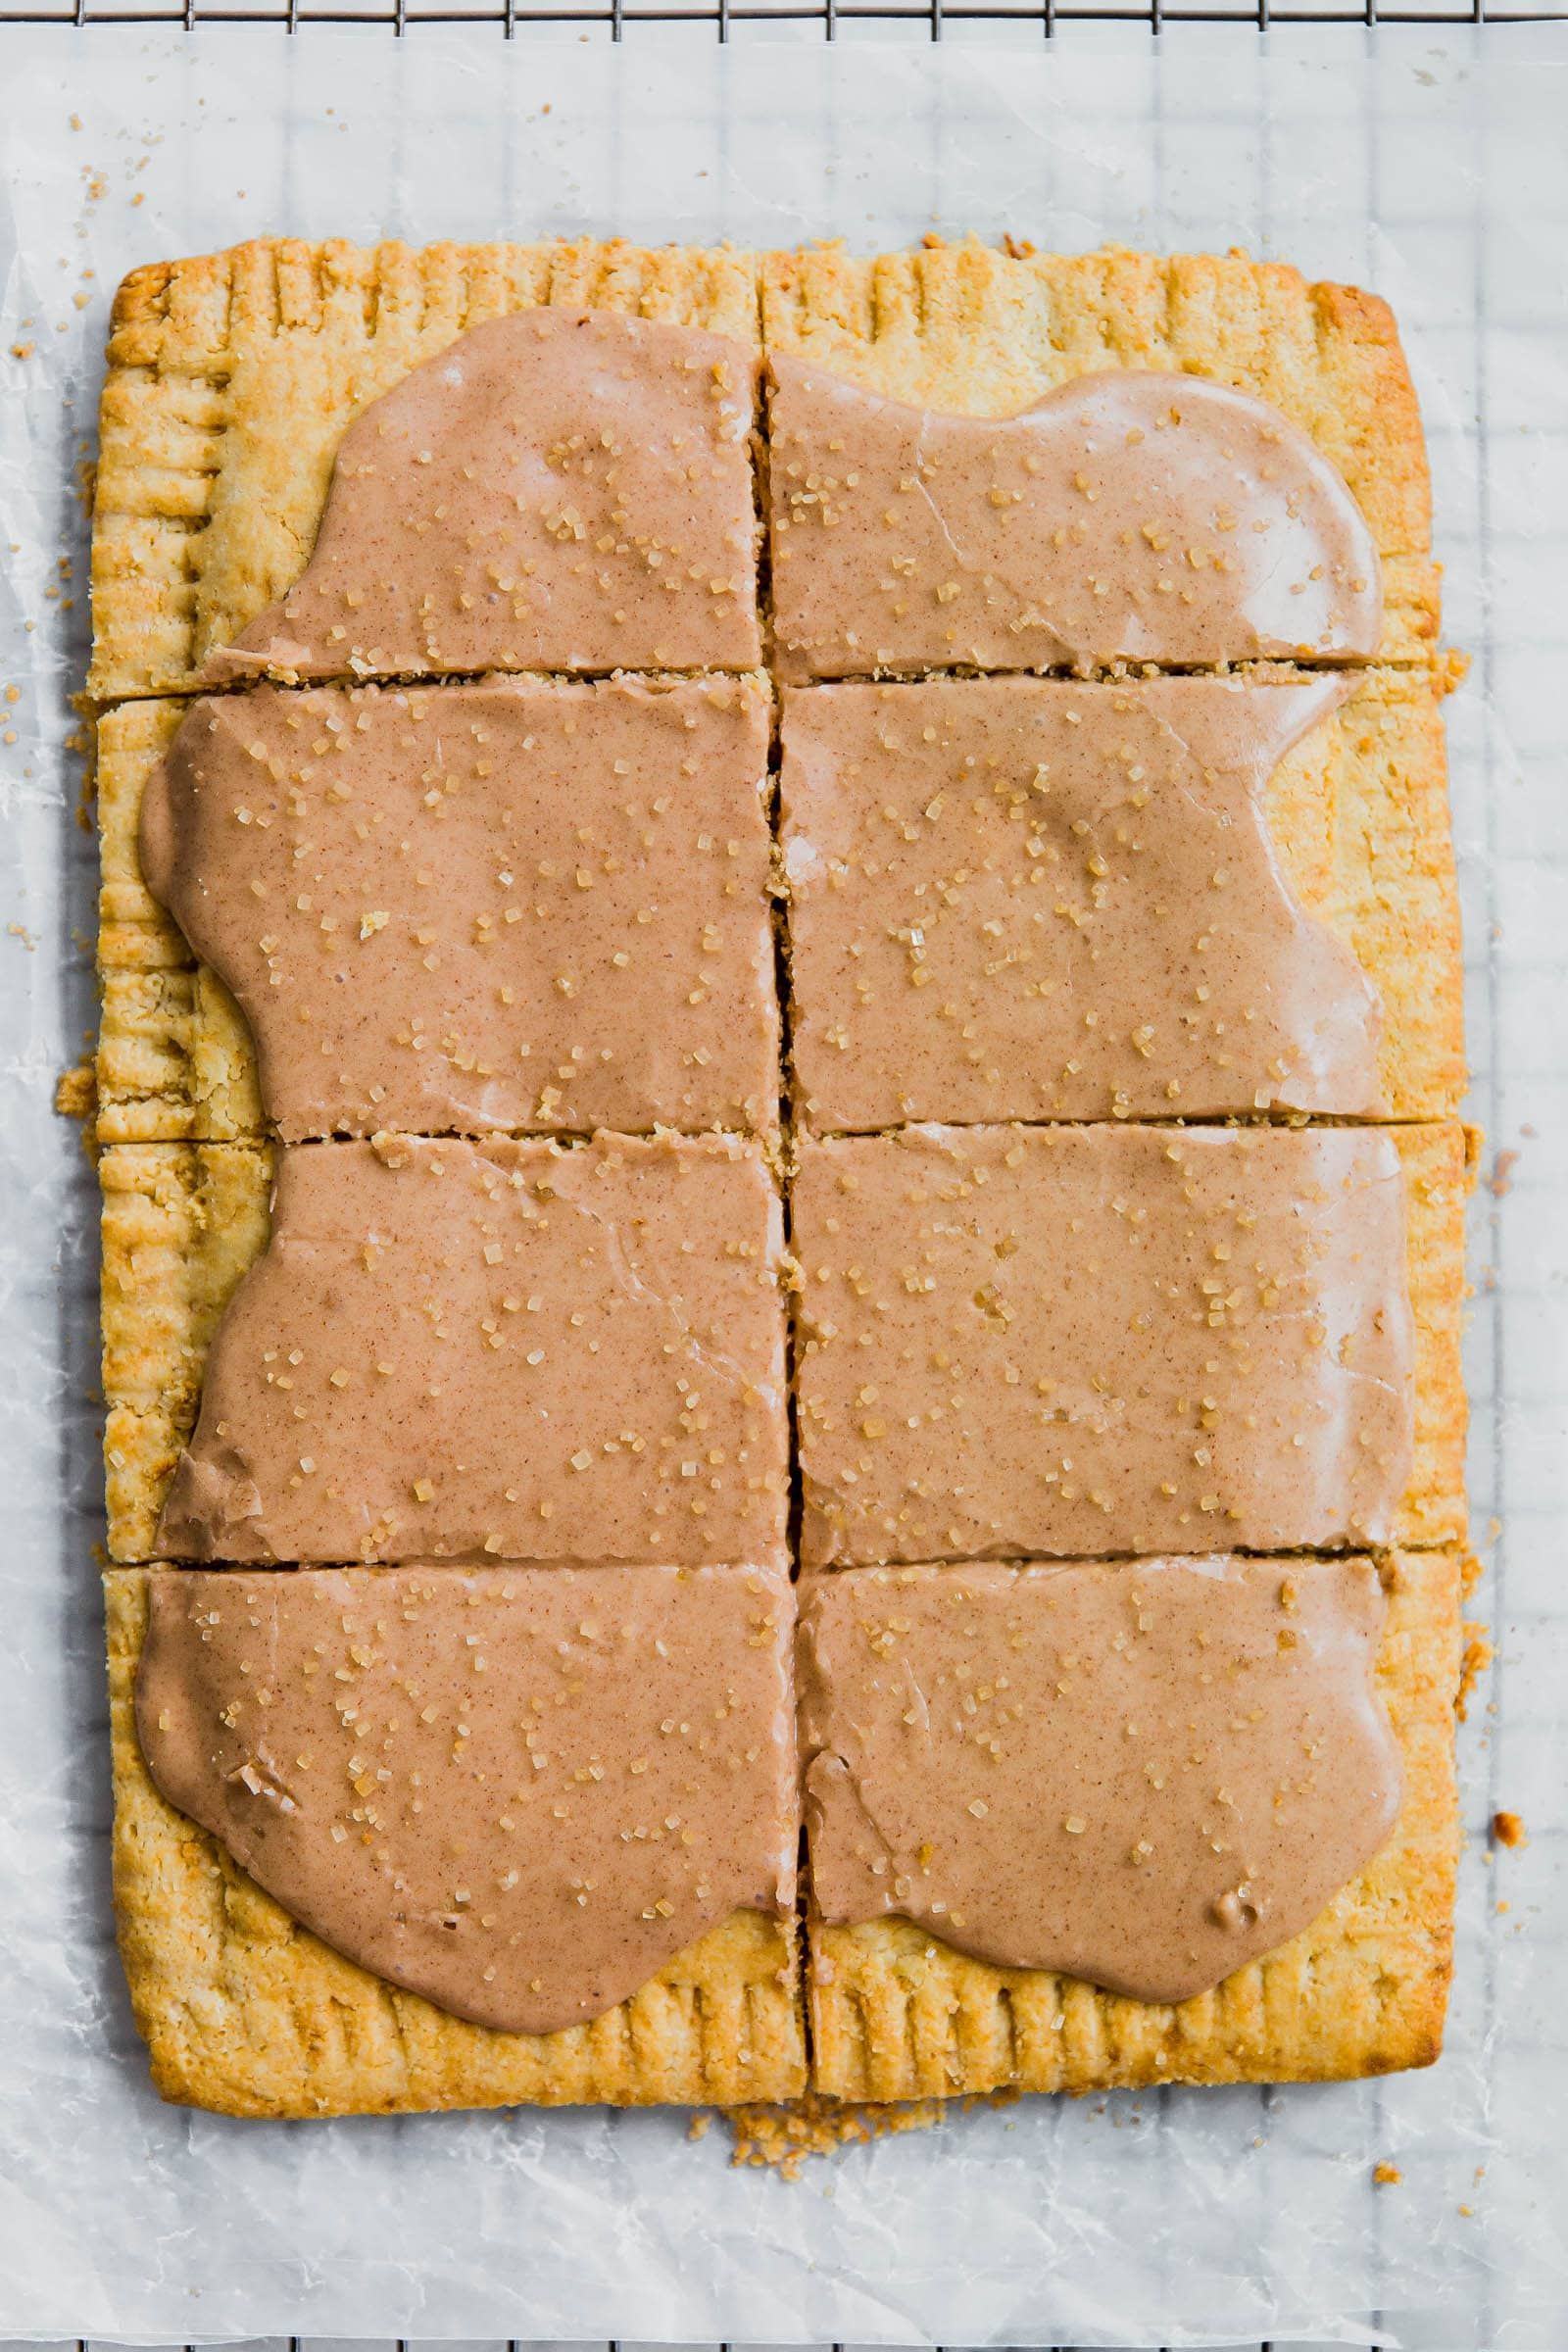 A giant buttery, flakey Grain Free Pumpkin Pop-Tart with a fall-spiced pumpkin filling and topped with a cinnamon maple glaze!